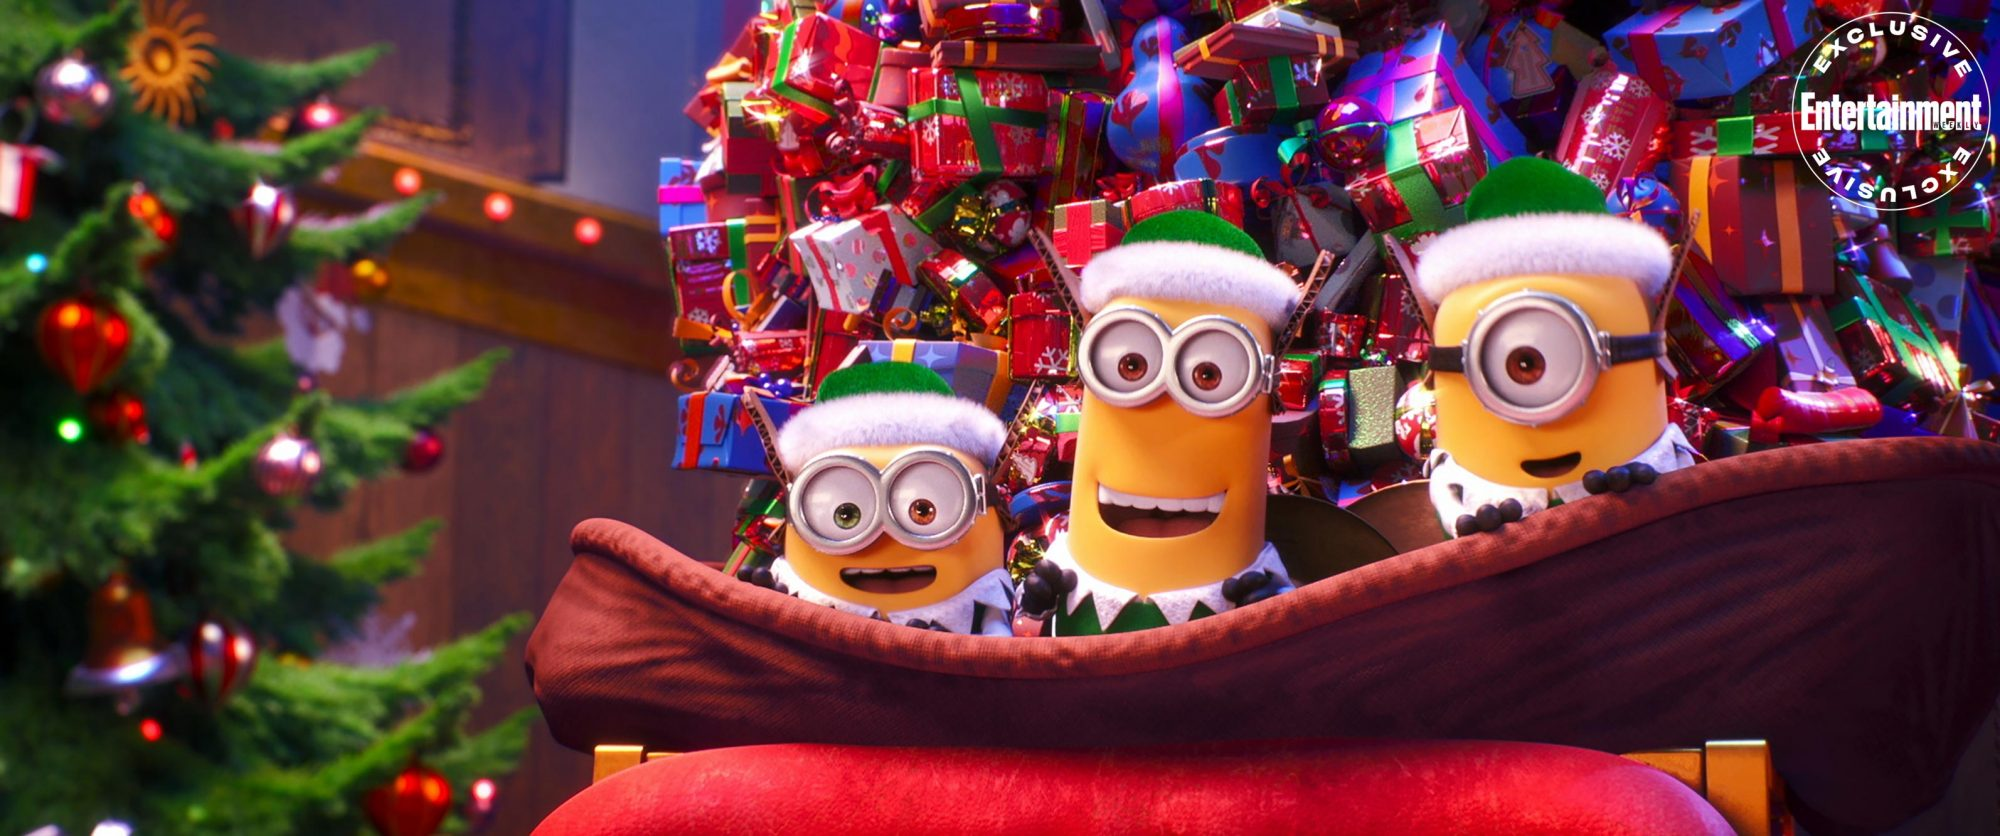 Nbs Christmas Specials 2021 First Look At Minions Holiday Special On Nbc Ew Com